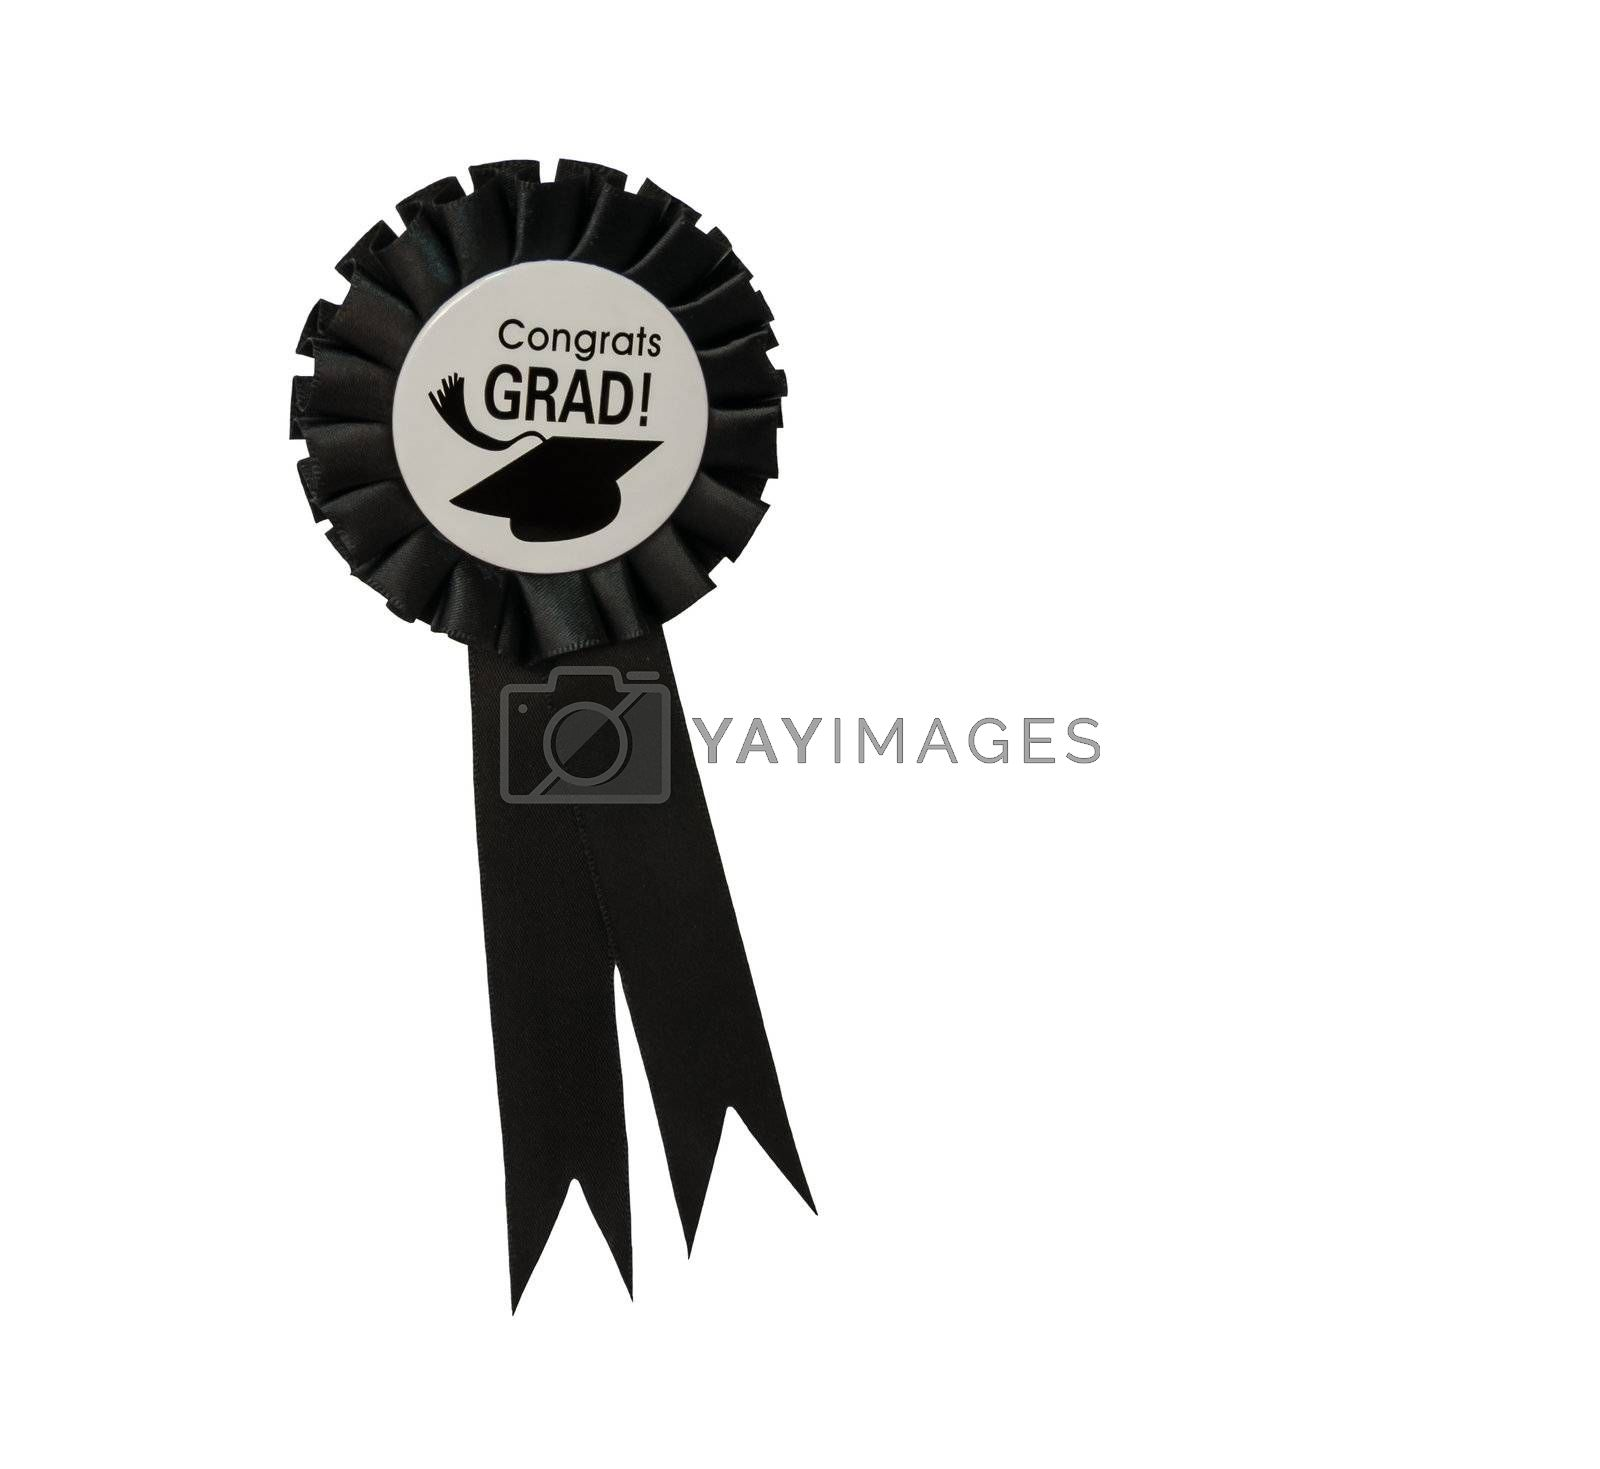 The fabric brooch with Congrats GRAD label